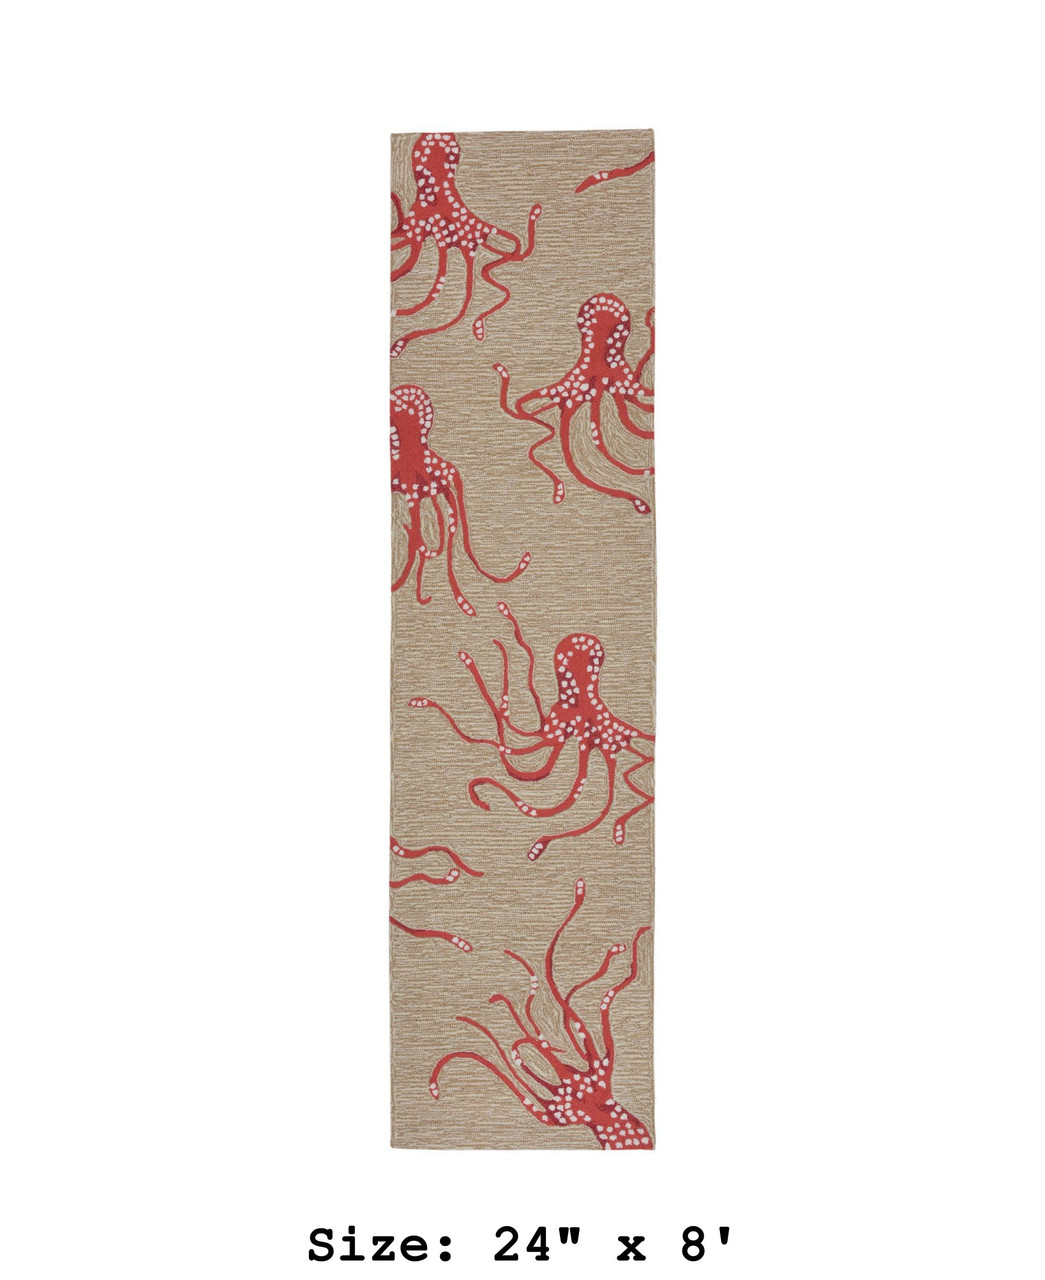 Coral Capri Octopus Indoor/Outdoor Rug - Runner